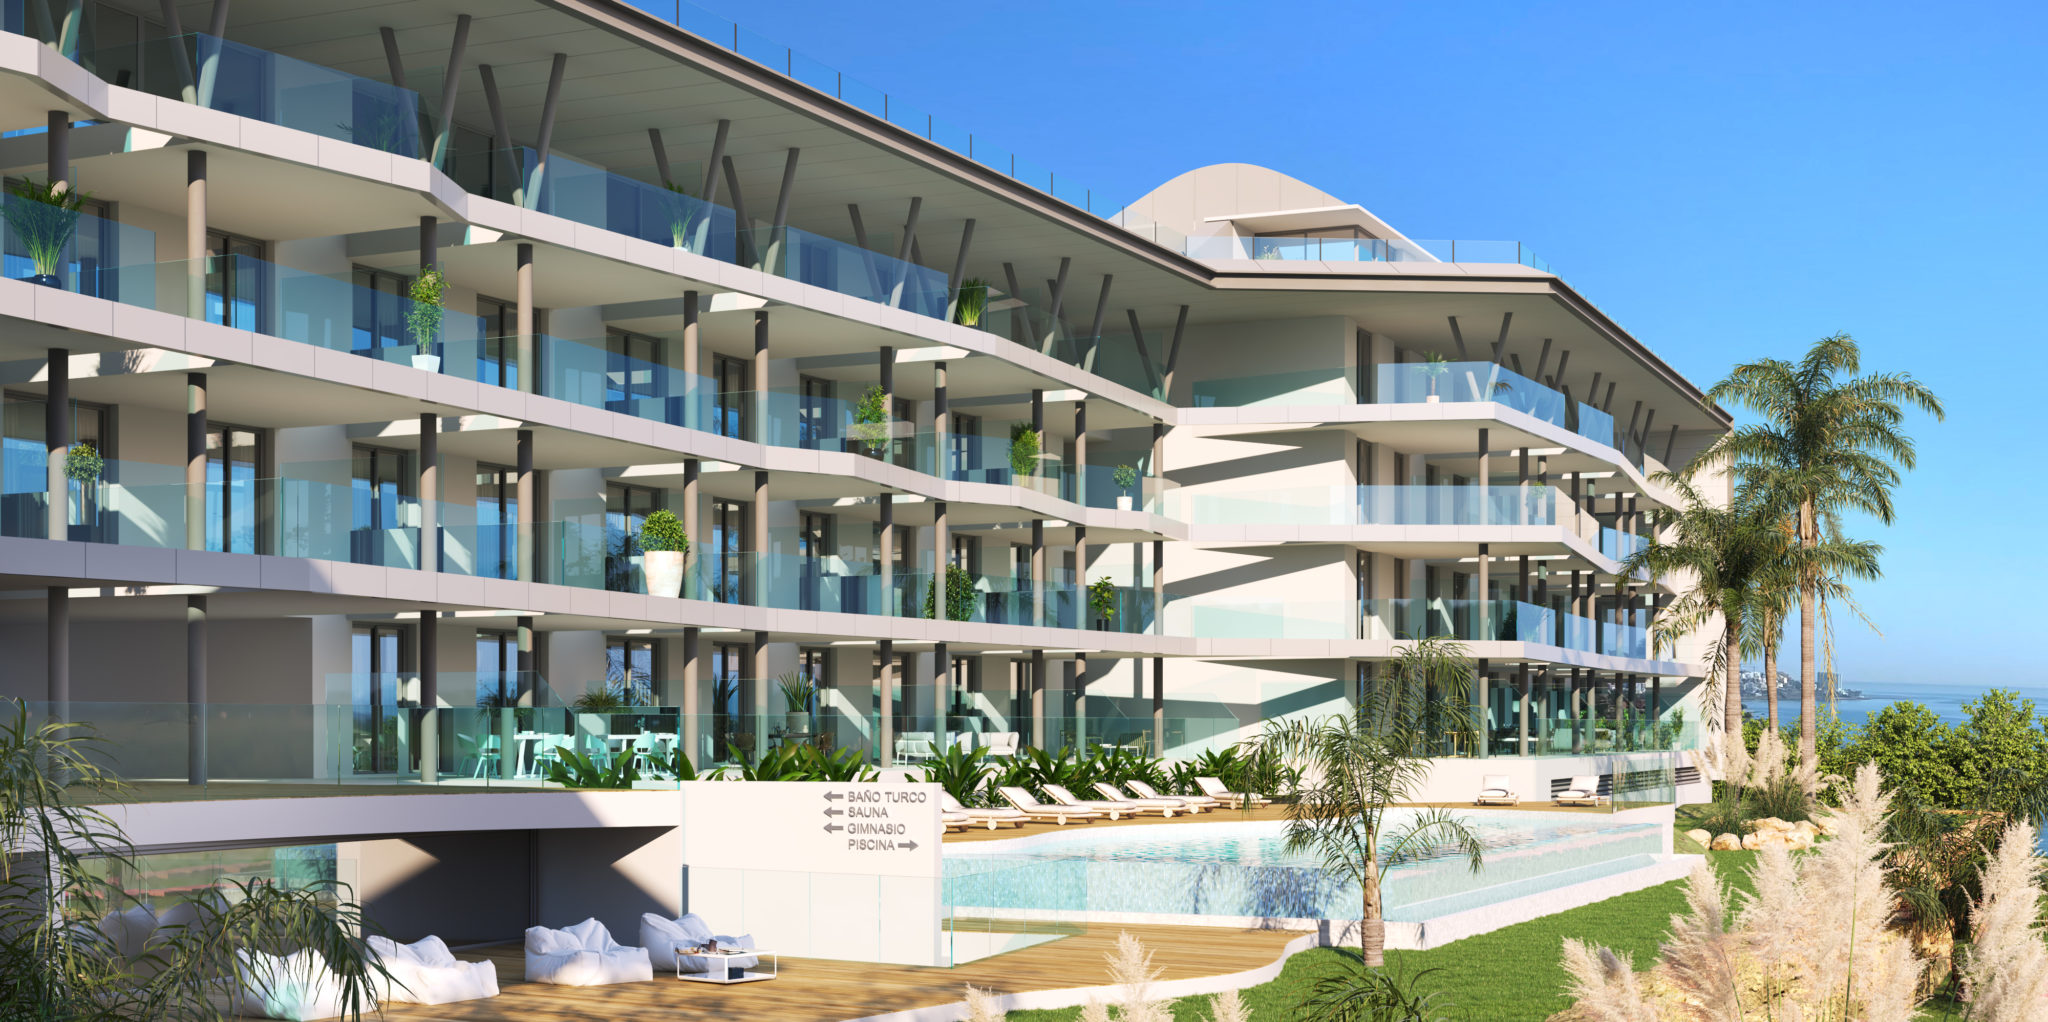 2,3 and 4 bedrooms and penthouses 180 seaviews in Fuengirola